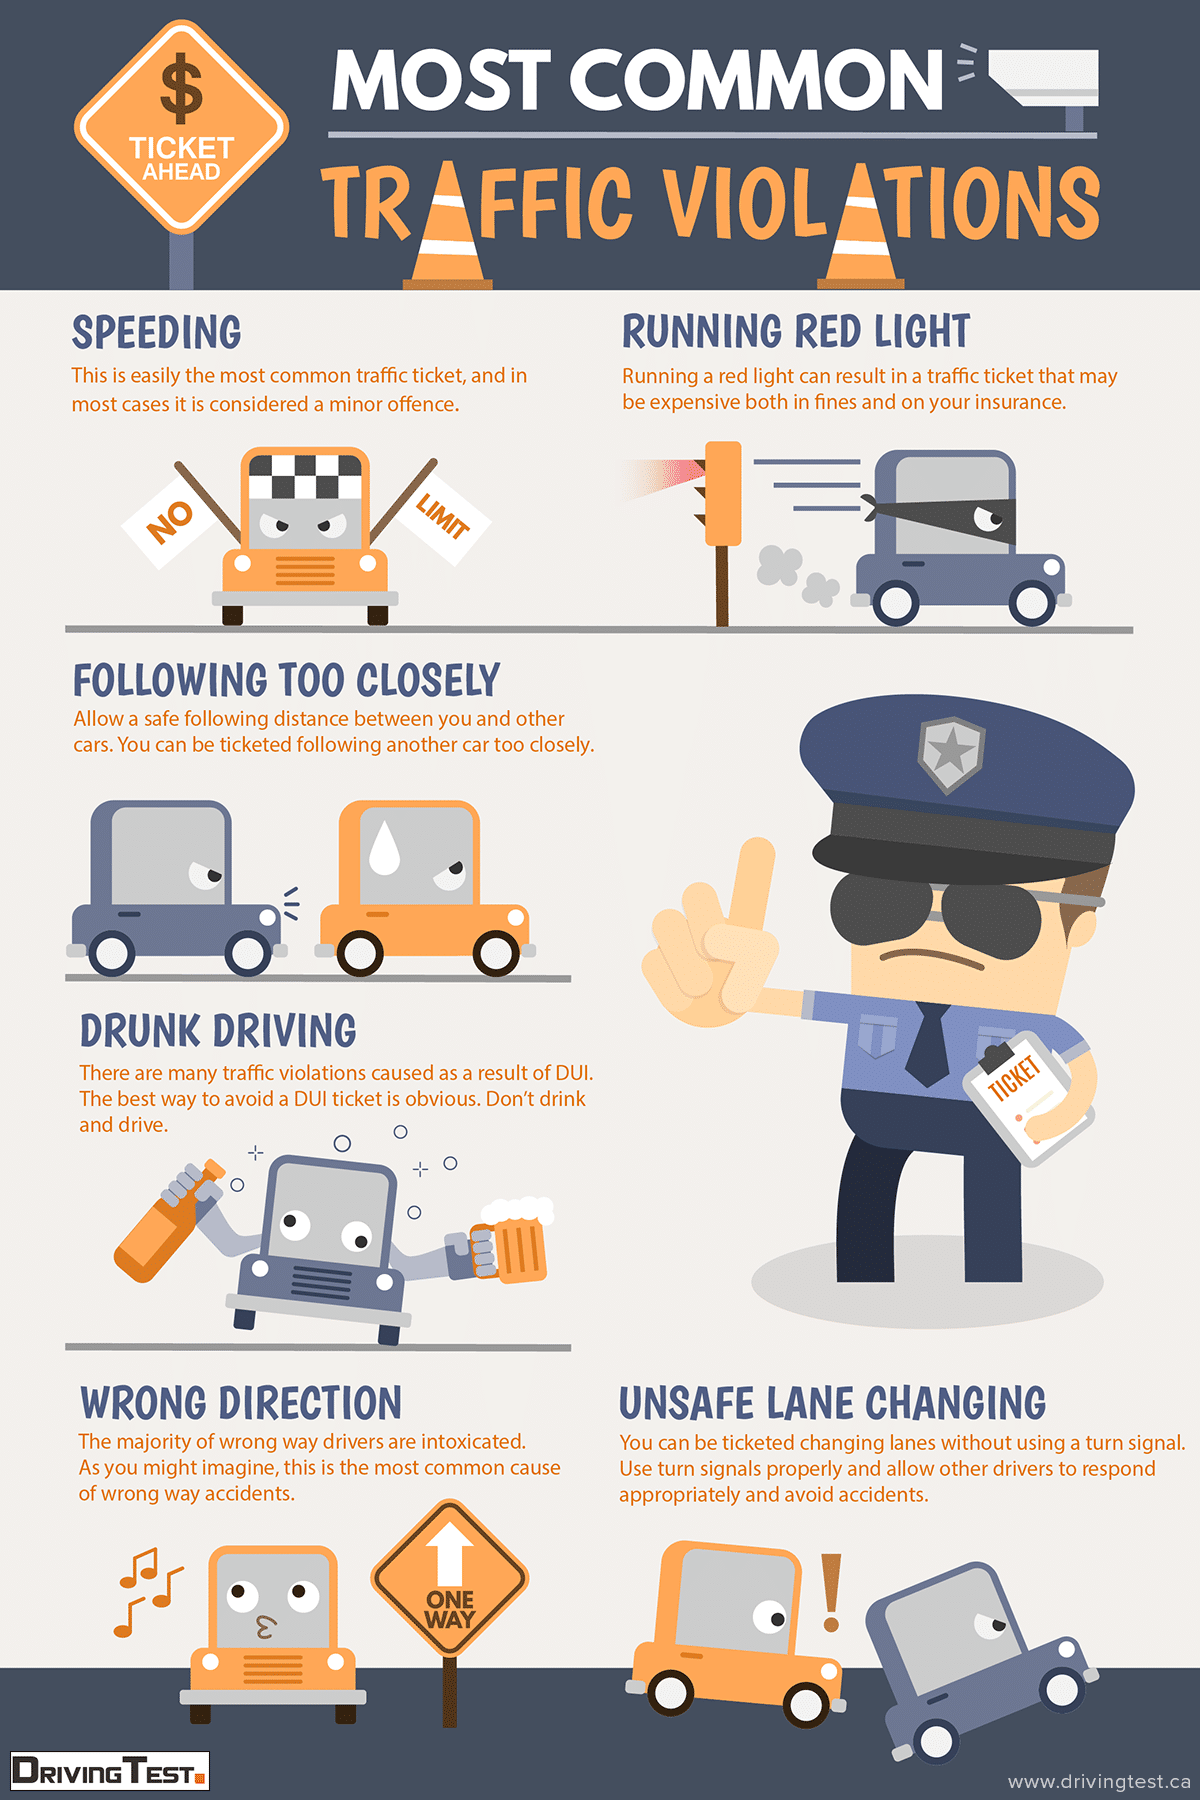 Most Common Traffic Violations